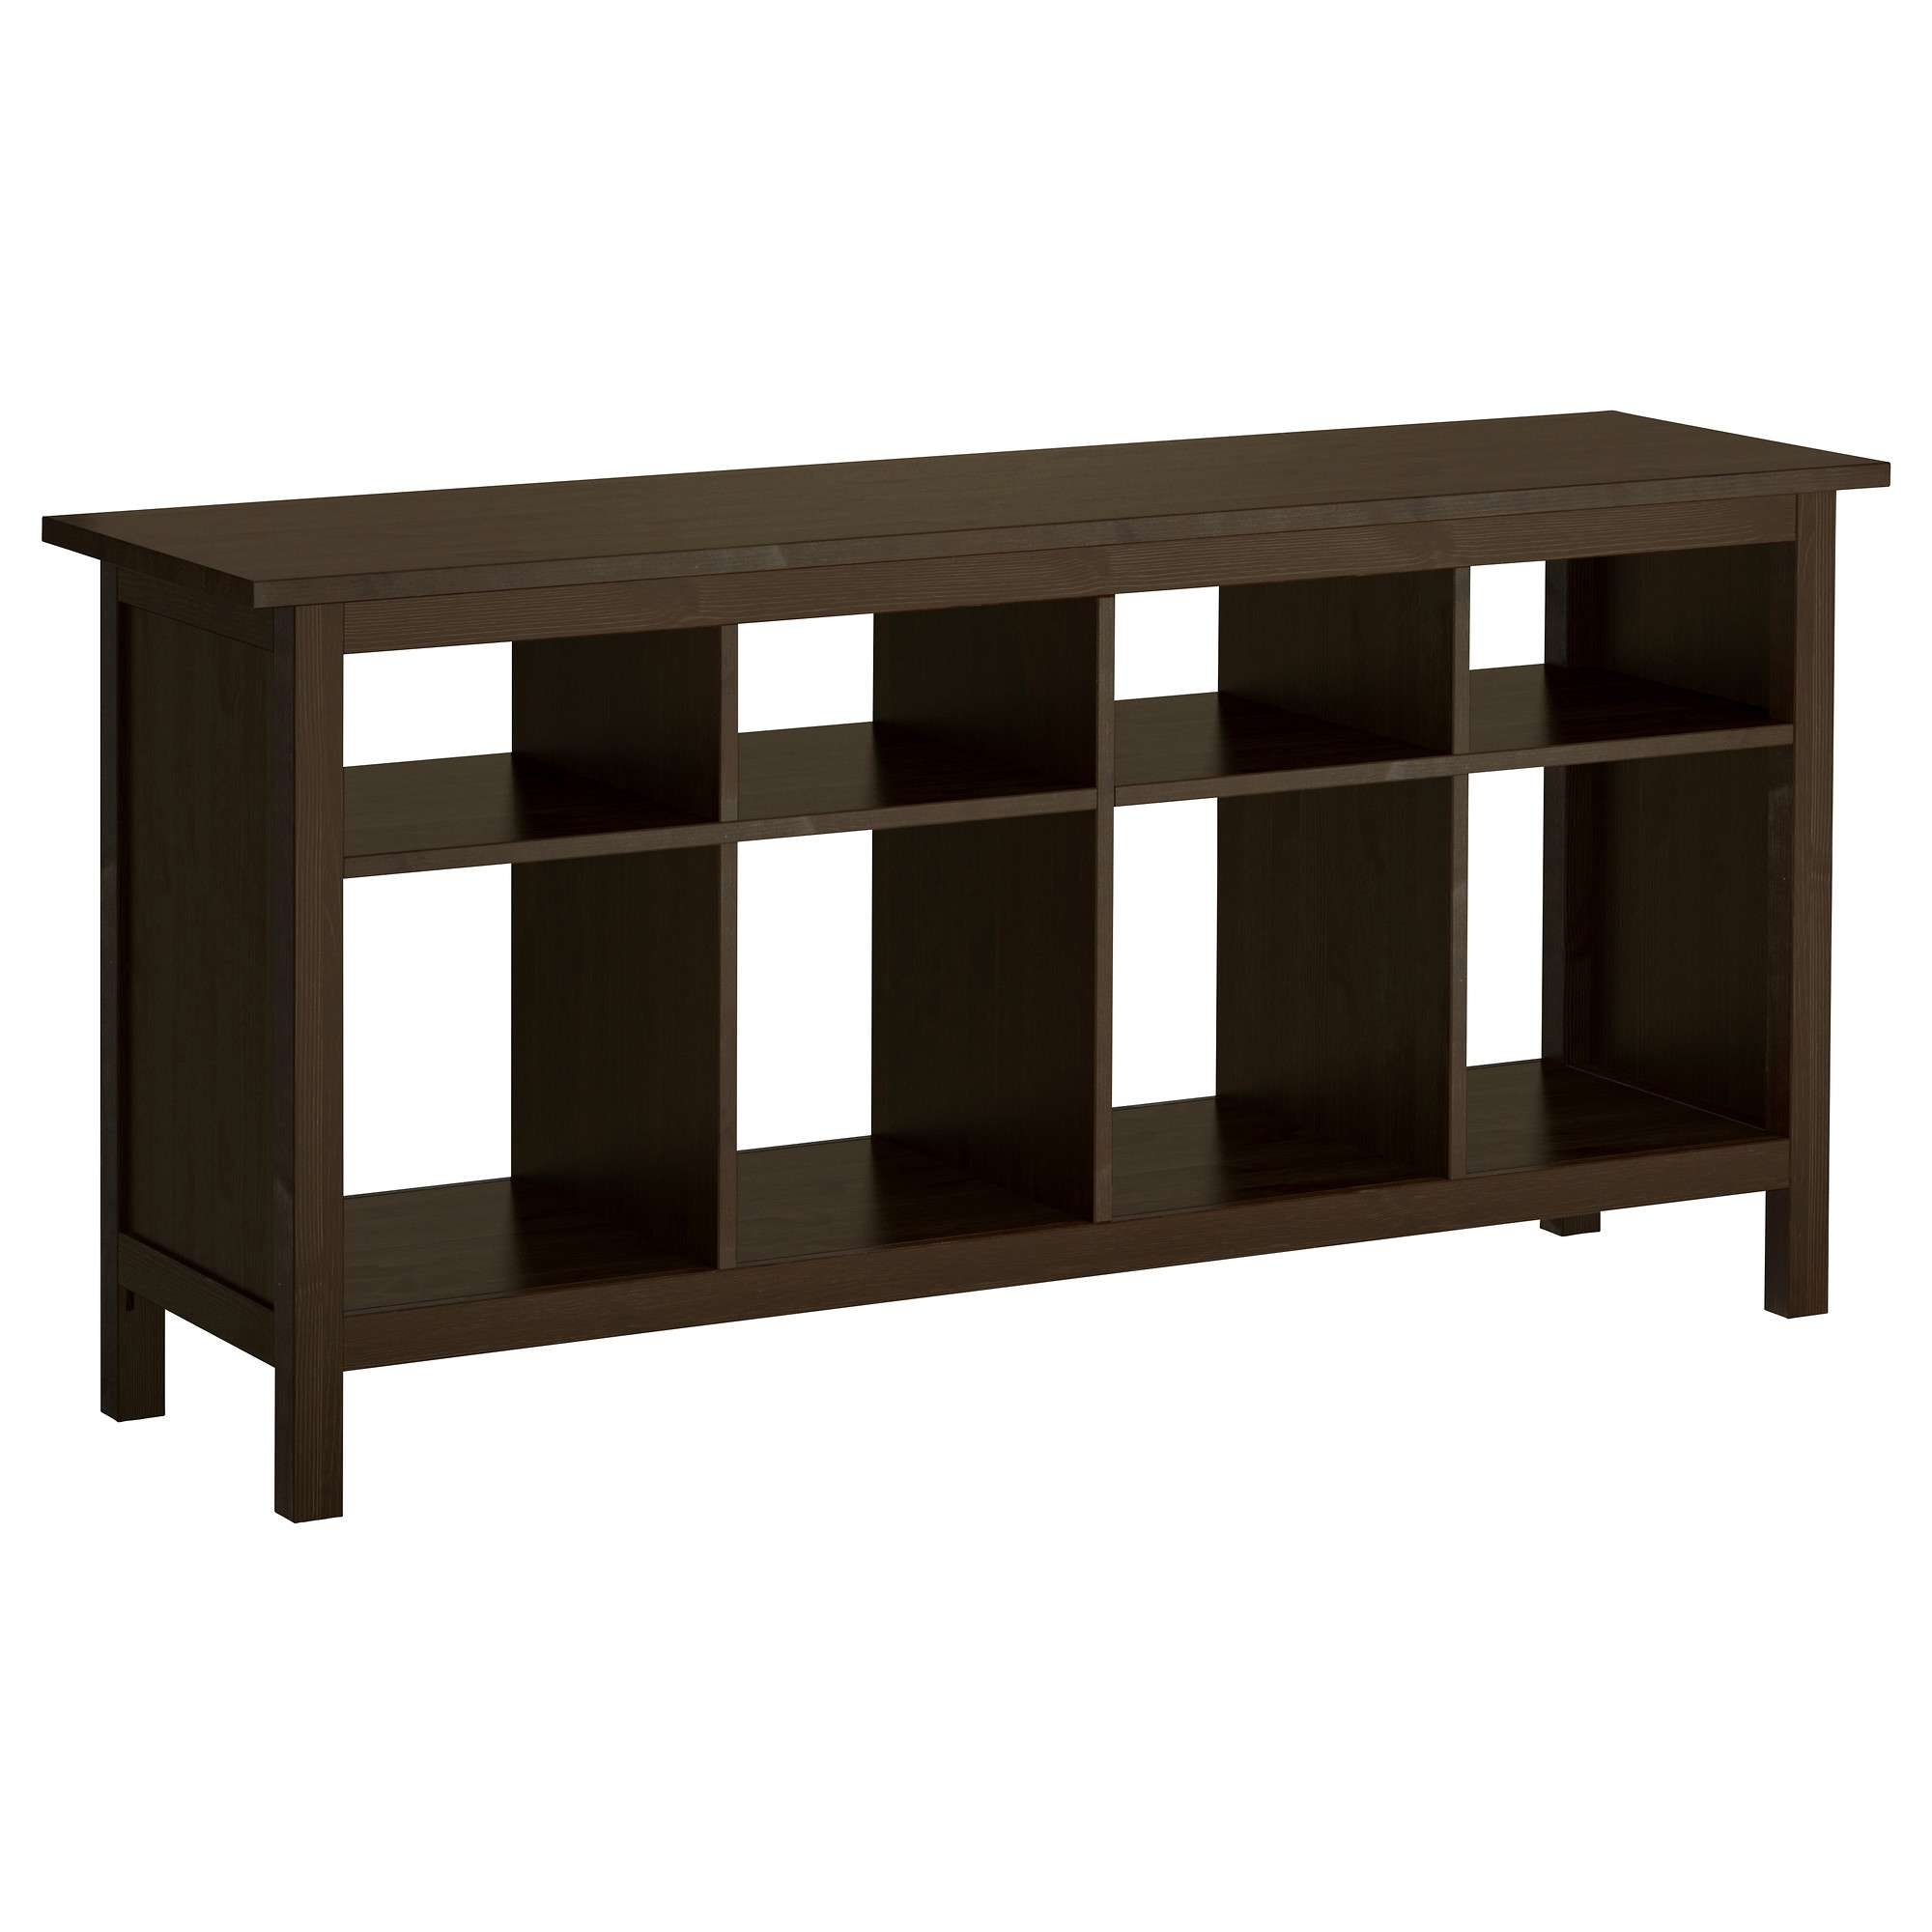 Console Tables, Sofa Tables & Sideboards – Ikea Regarding 36 Inch Sideboards (View 11 of 20)